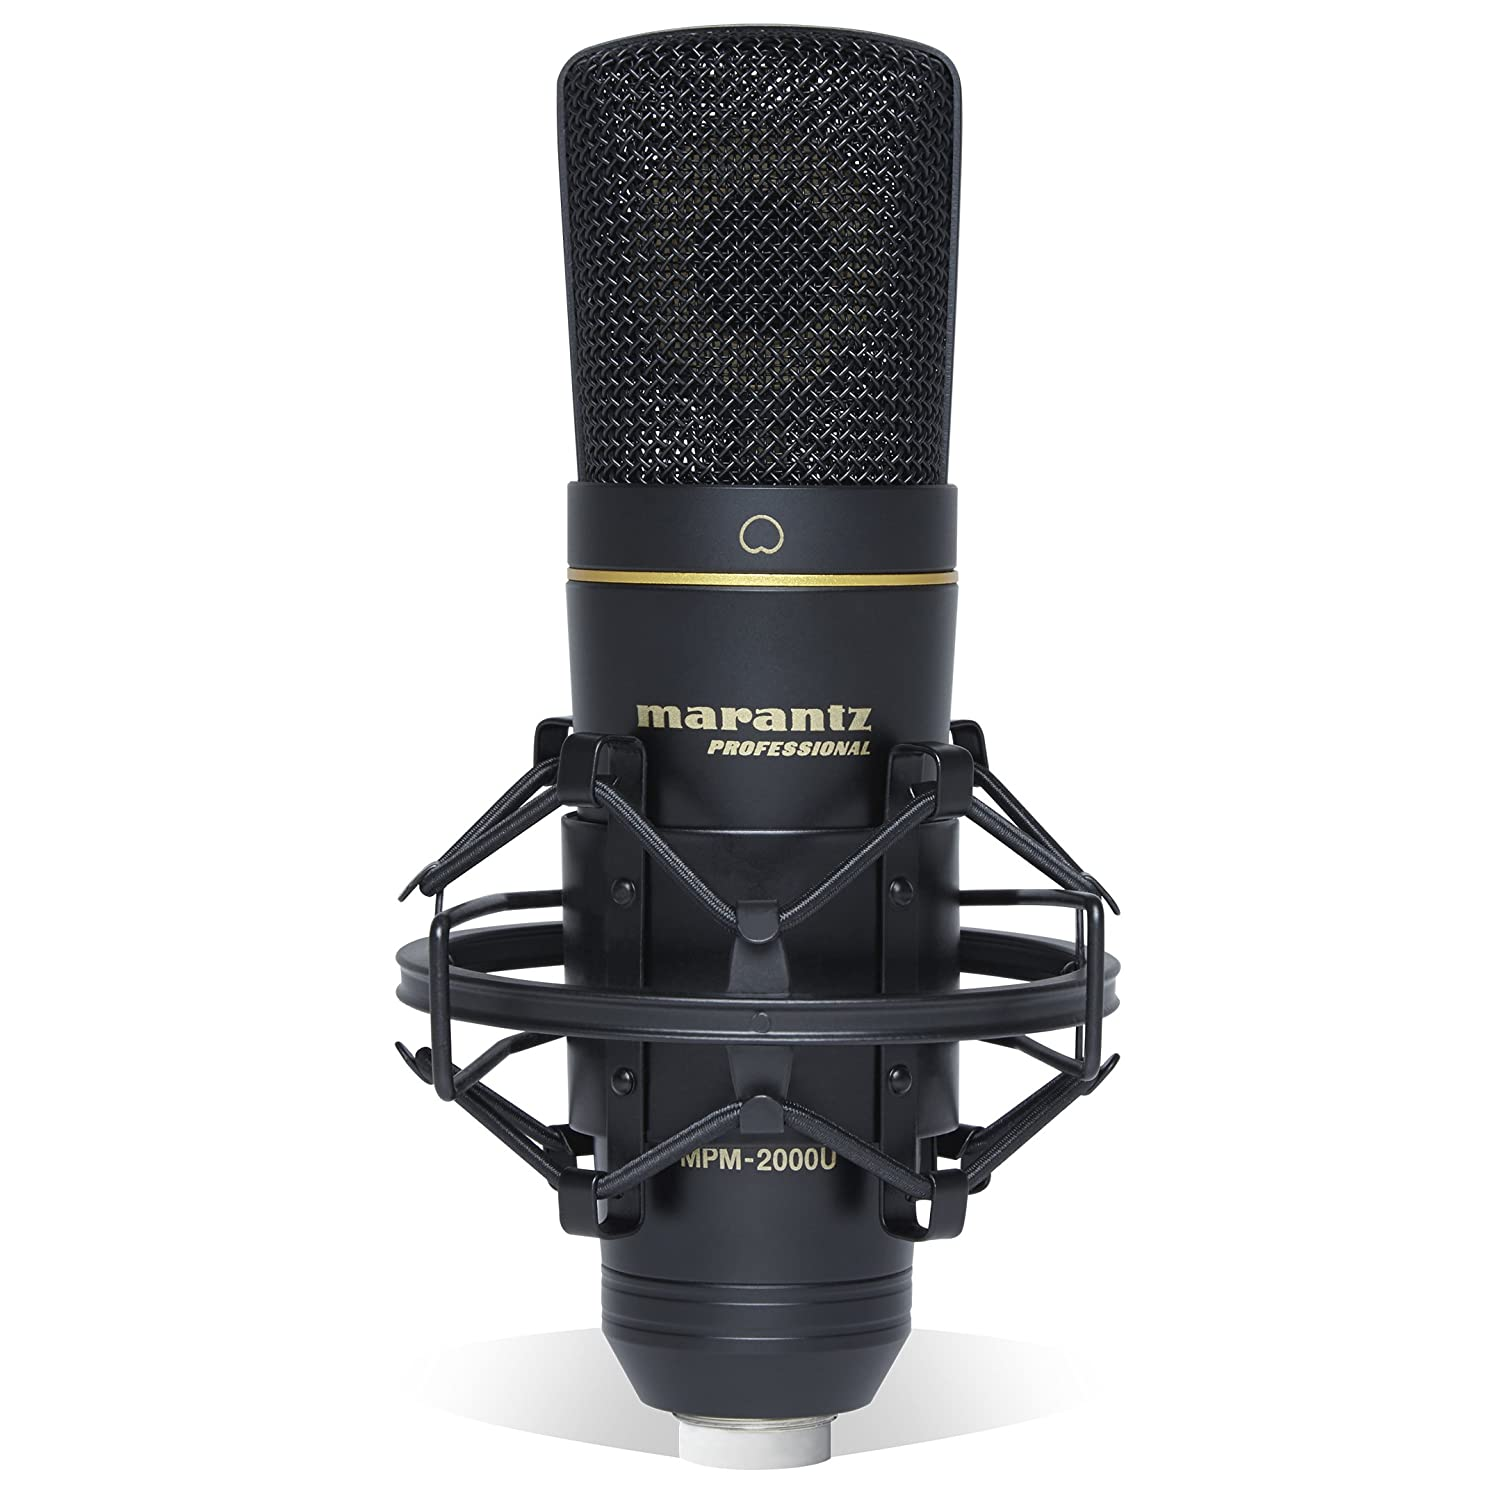 Marantz Professional MPM-1000U | Studio Condenser USB Microphone for DAW Recording & Podcasting (14mm/USB Out) inMusic Brands Inc.